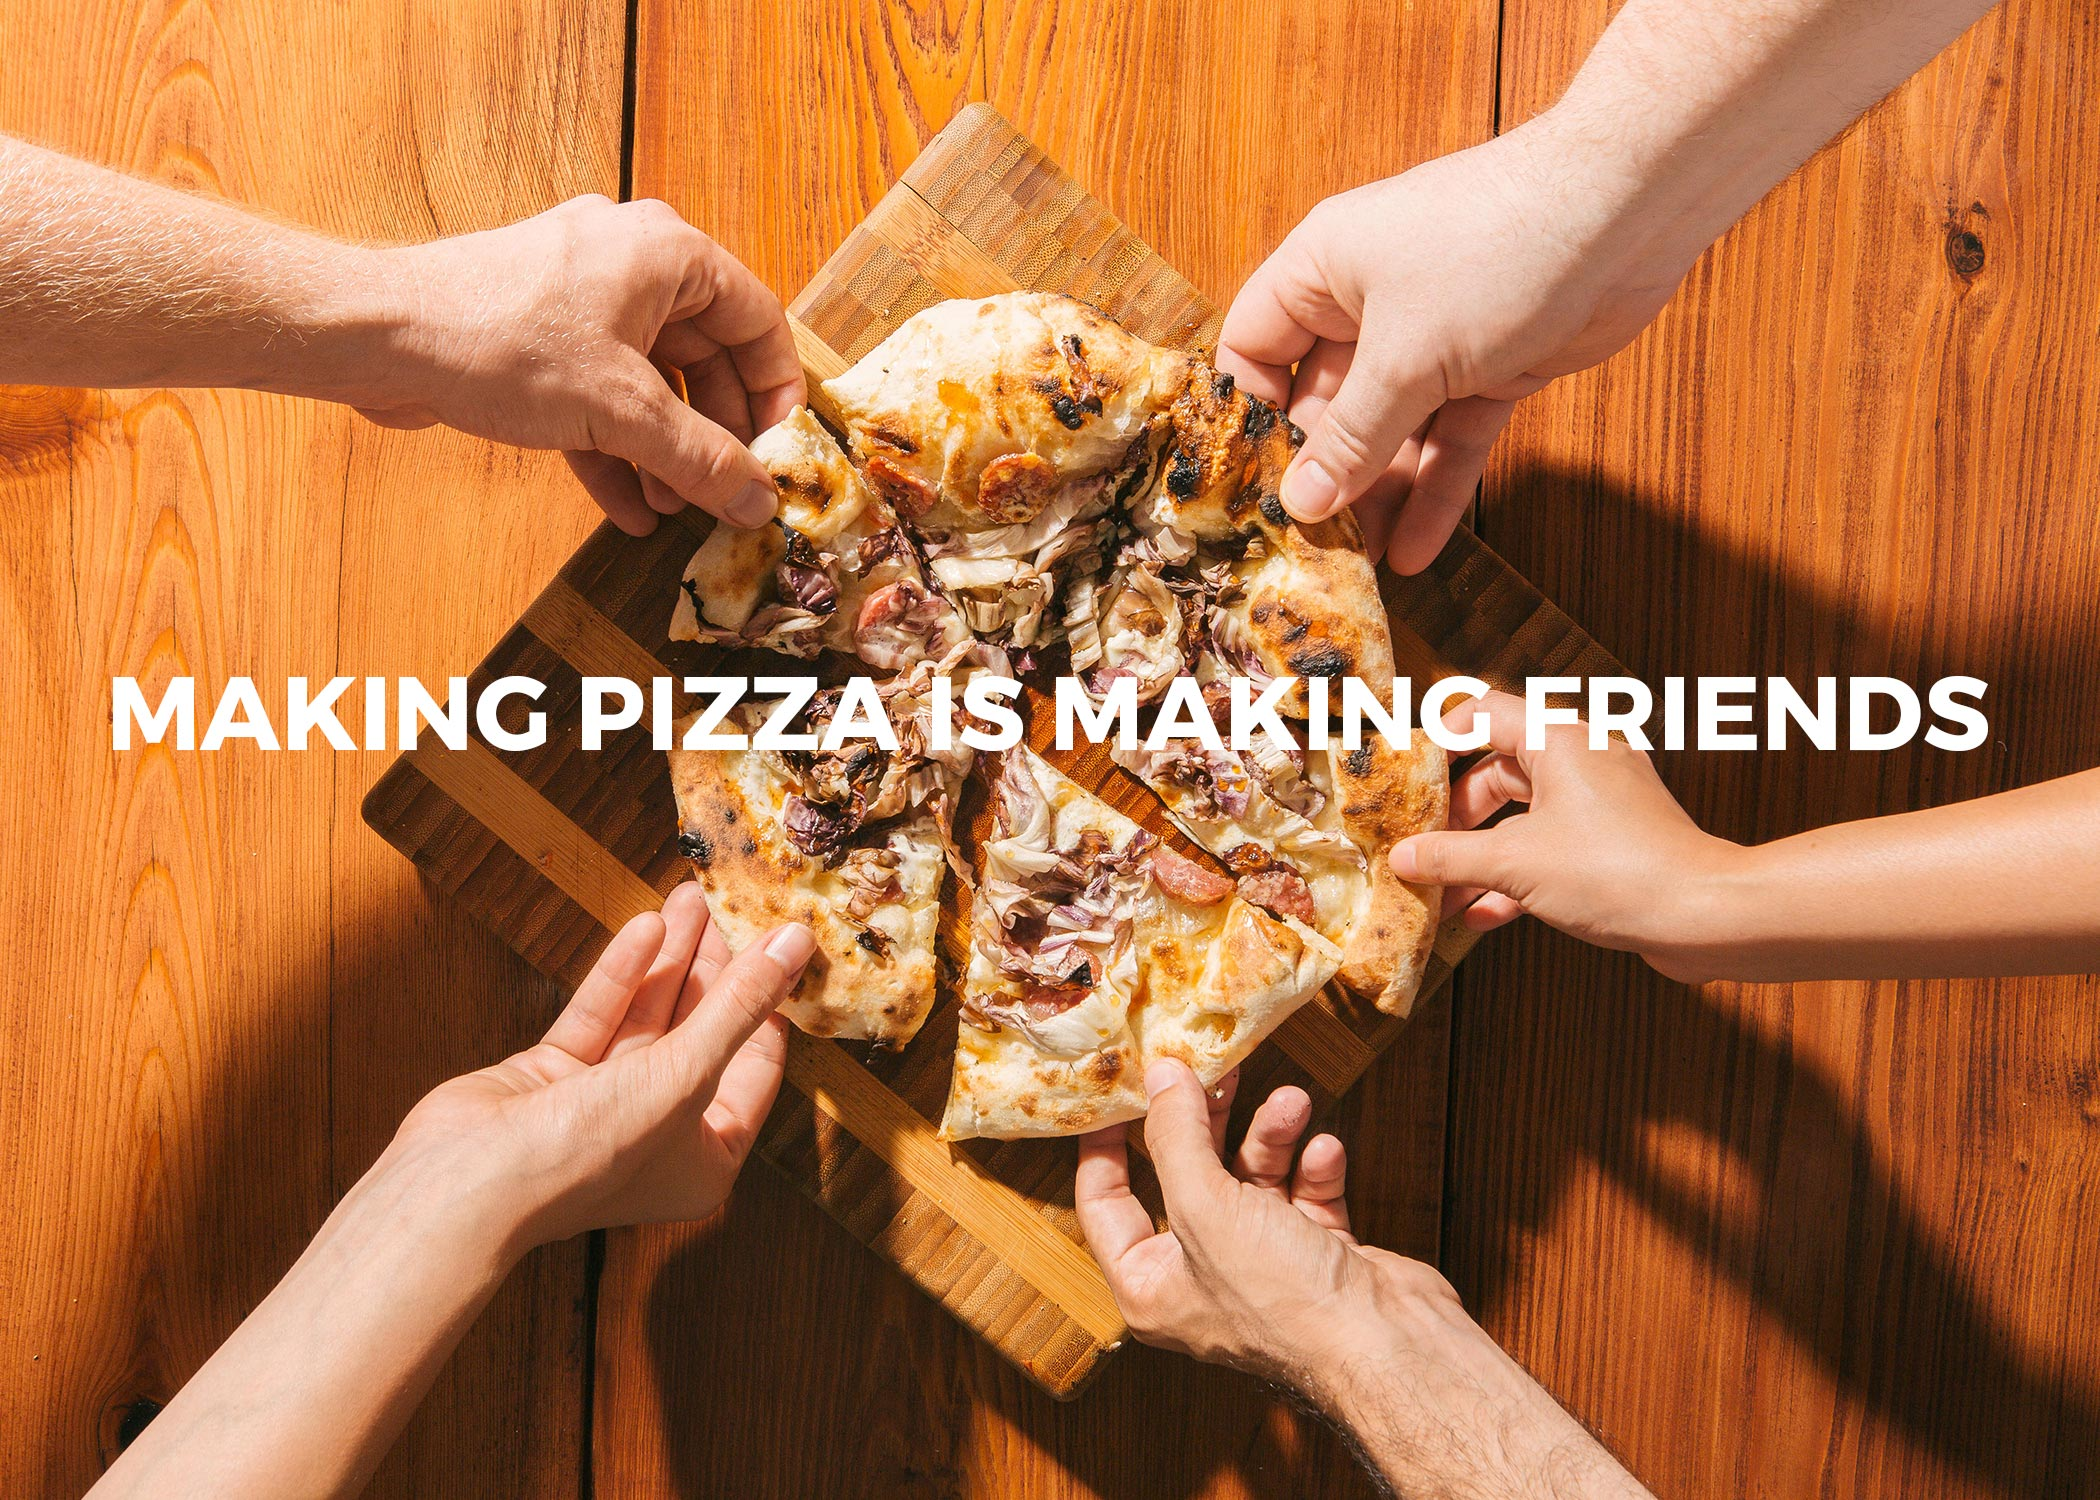 Making pizza is making friends